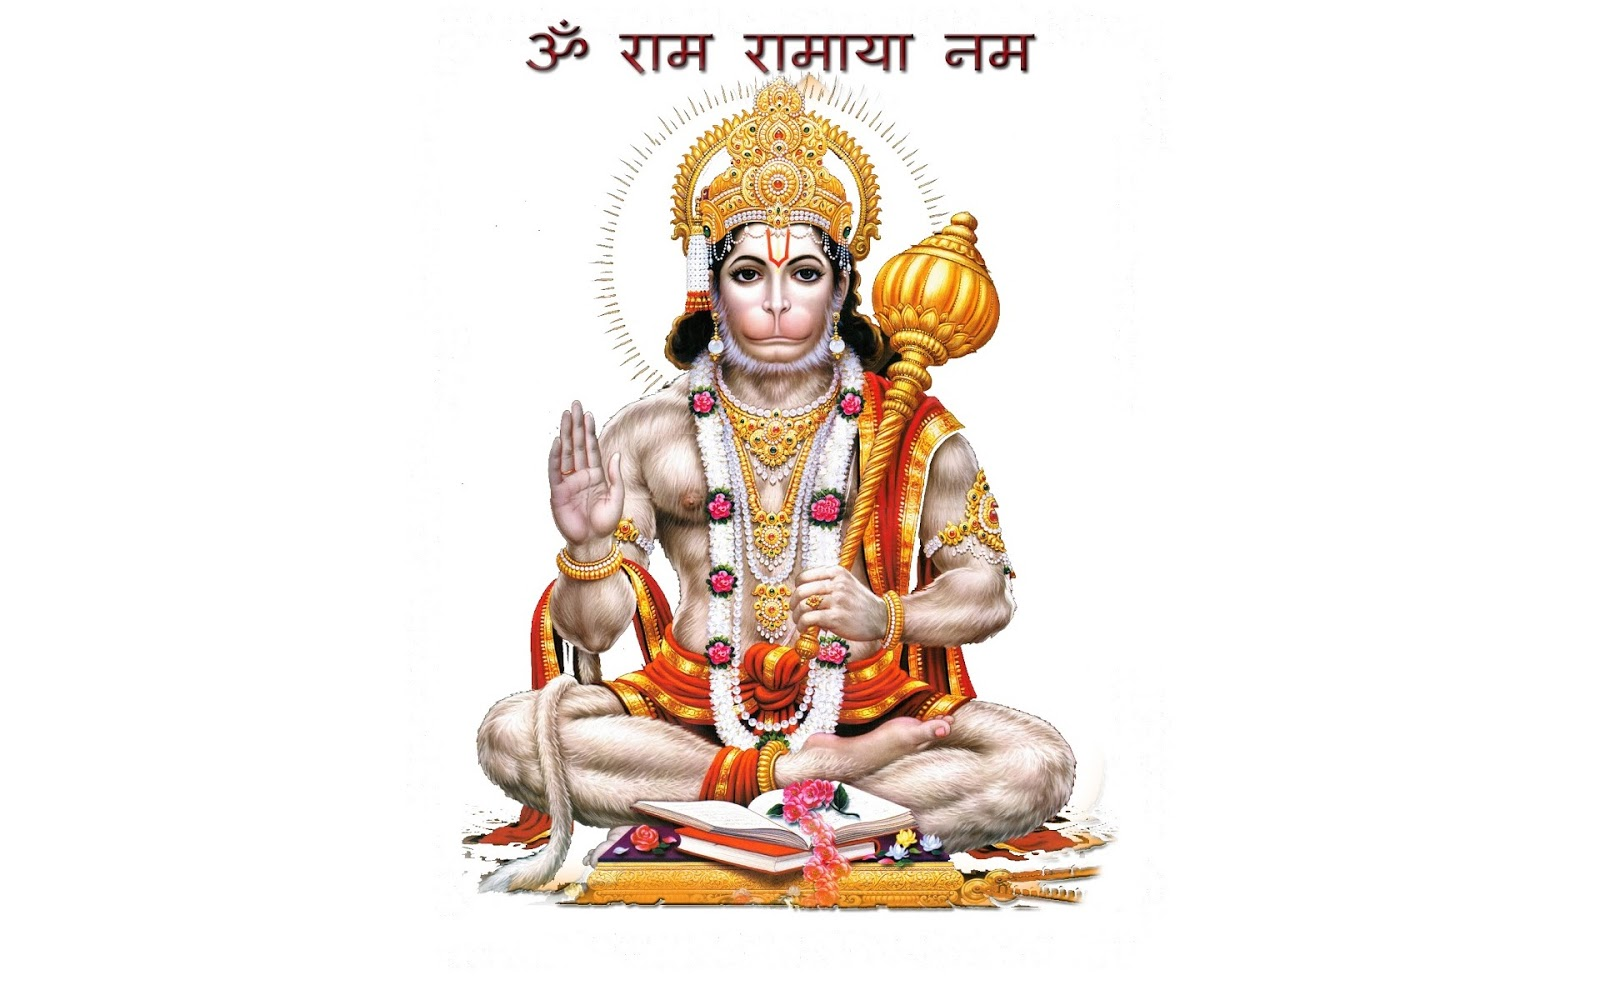 Hanuman Images, Photos, Pictures and wallpapers 2016   Lord Hanuman Photos Collection ...